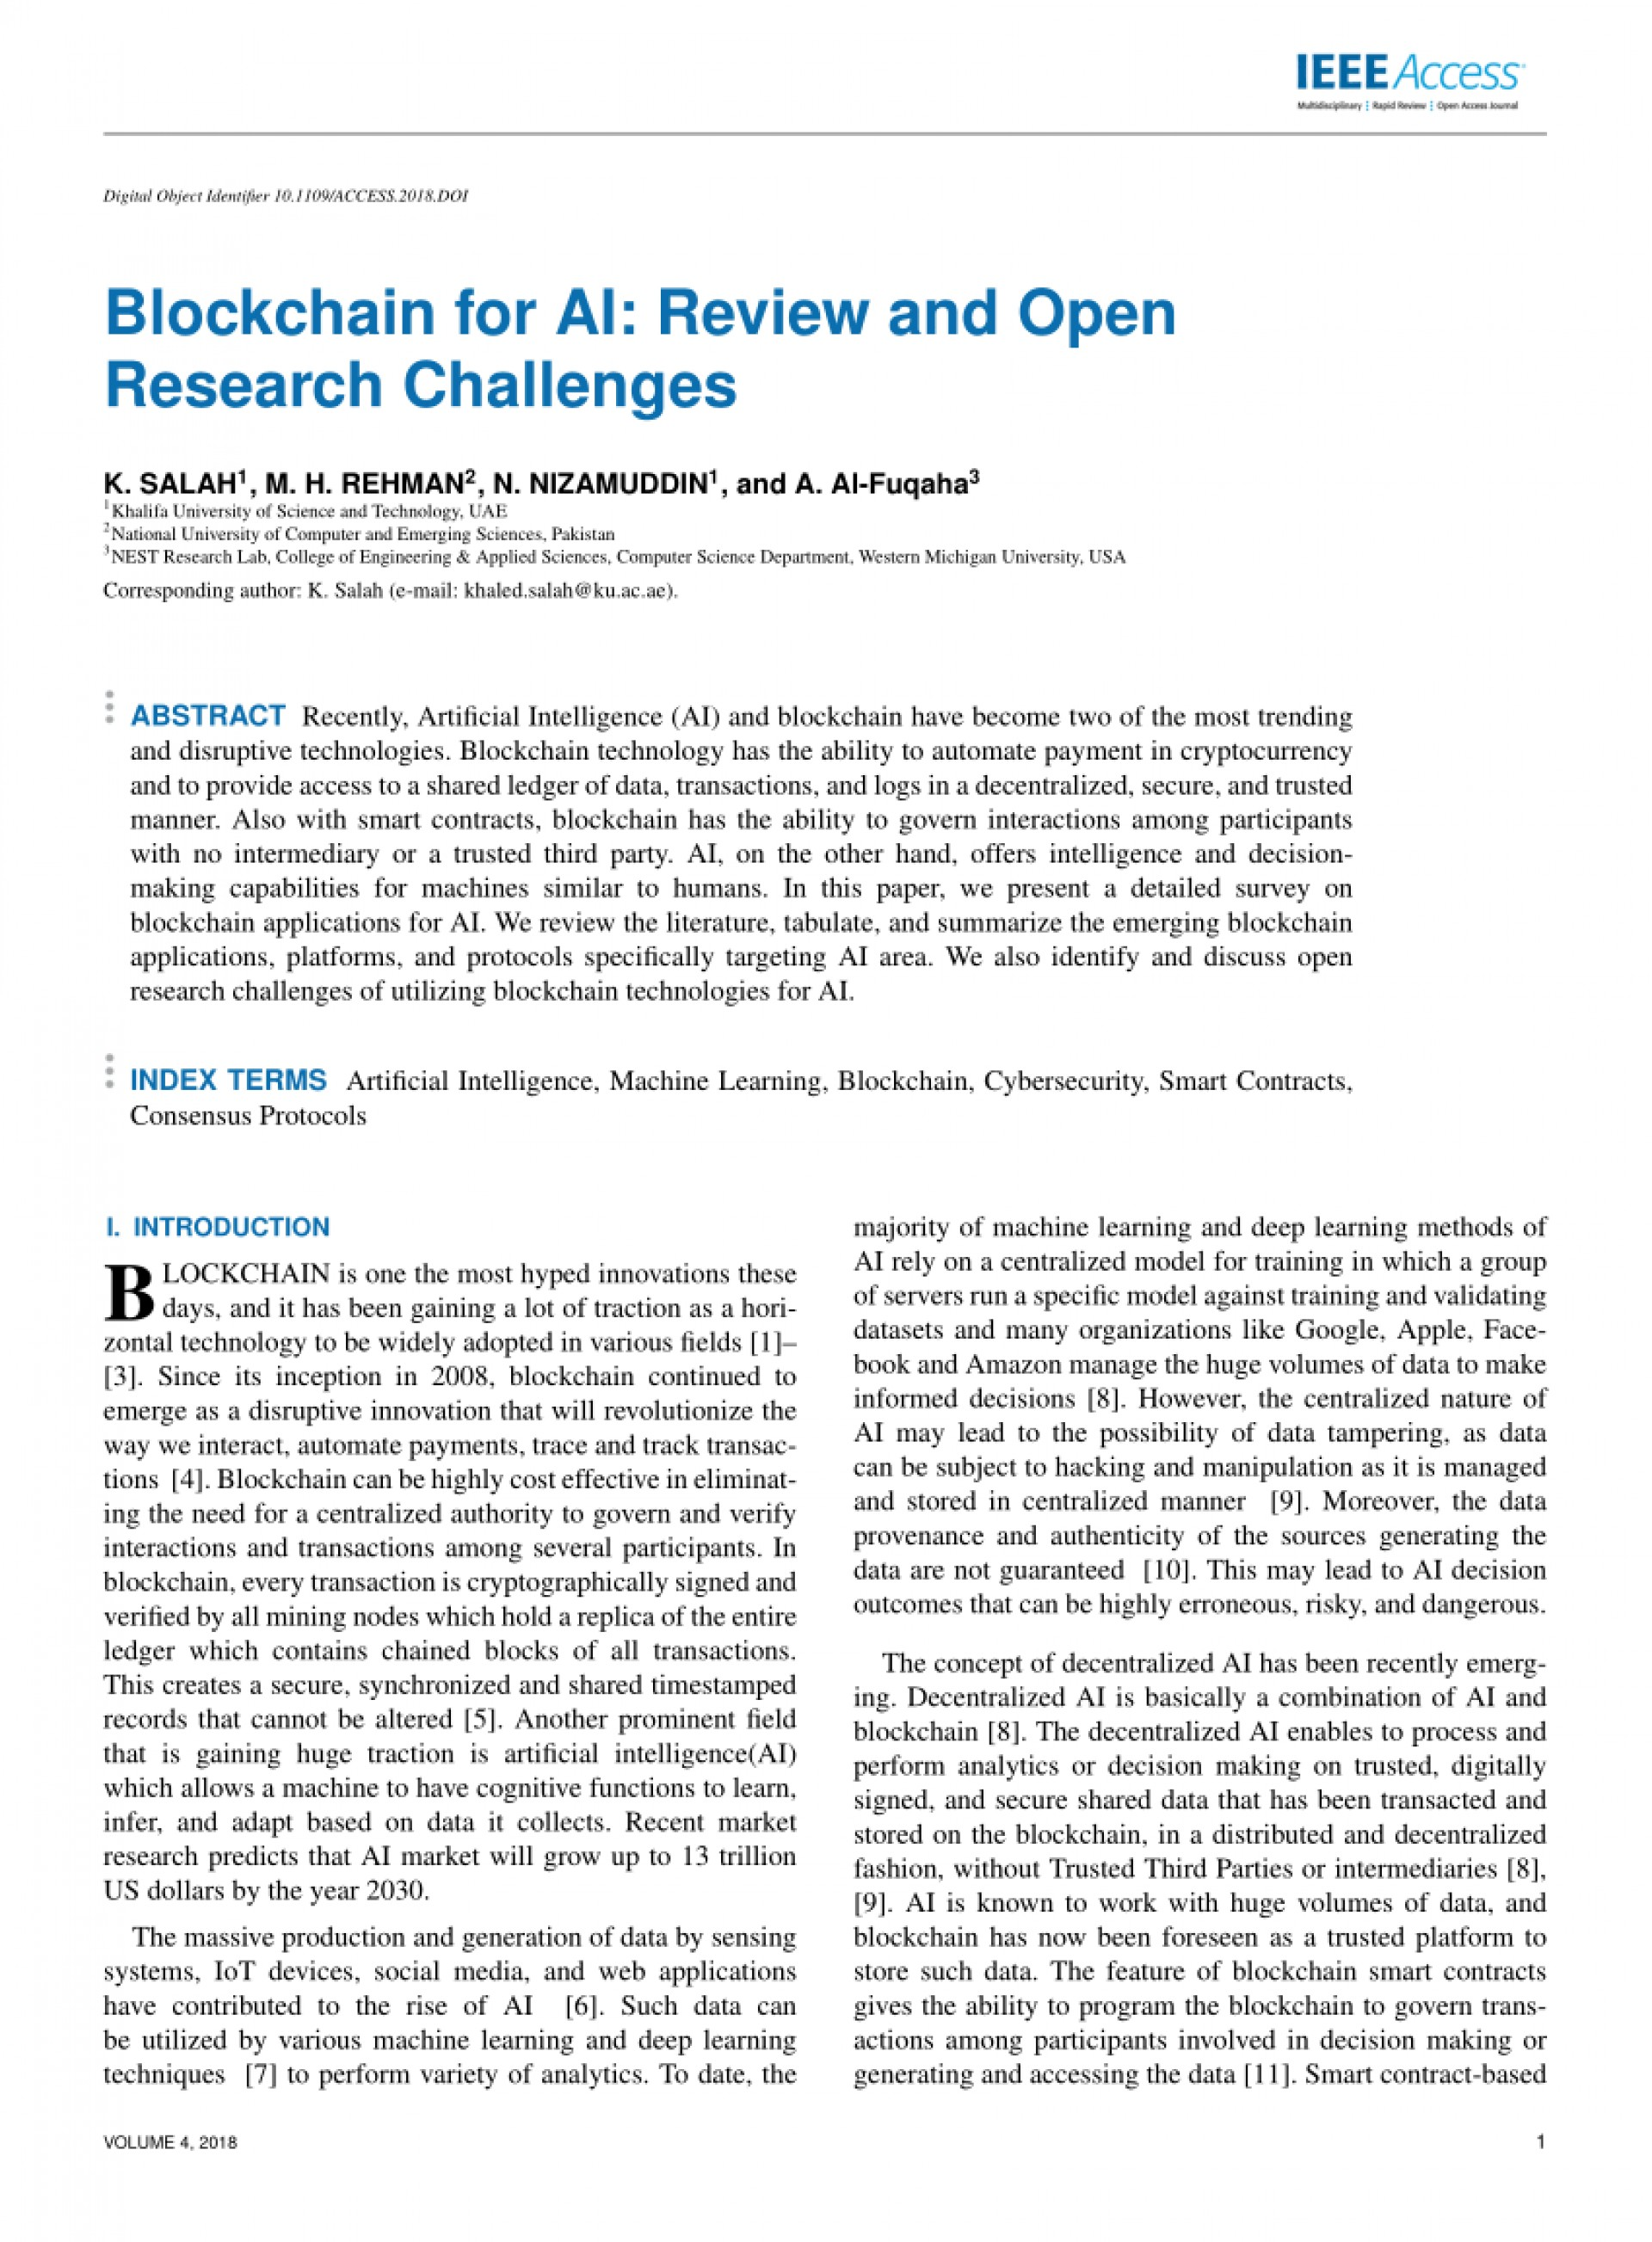 003 Largepreview Artificial Intelligence Research Paper Impressive 2018 Ieee 1920